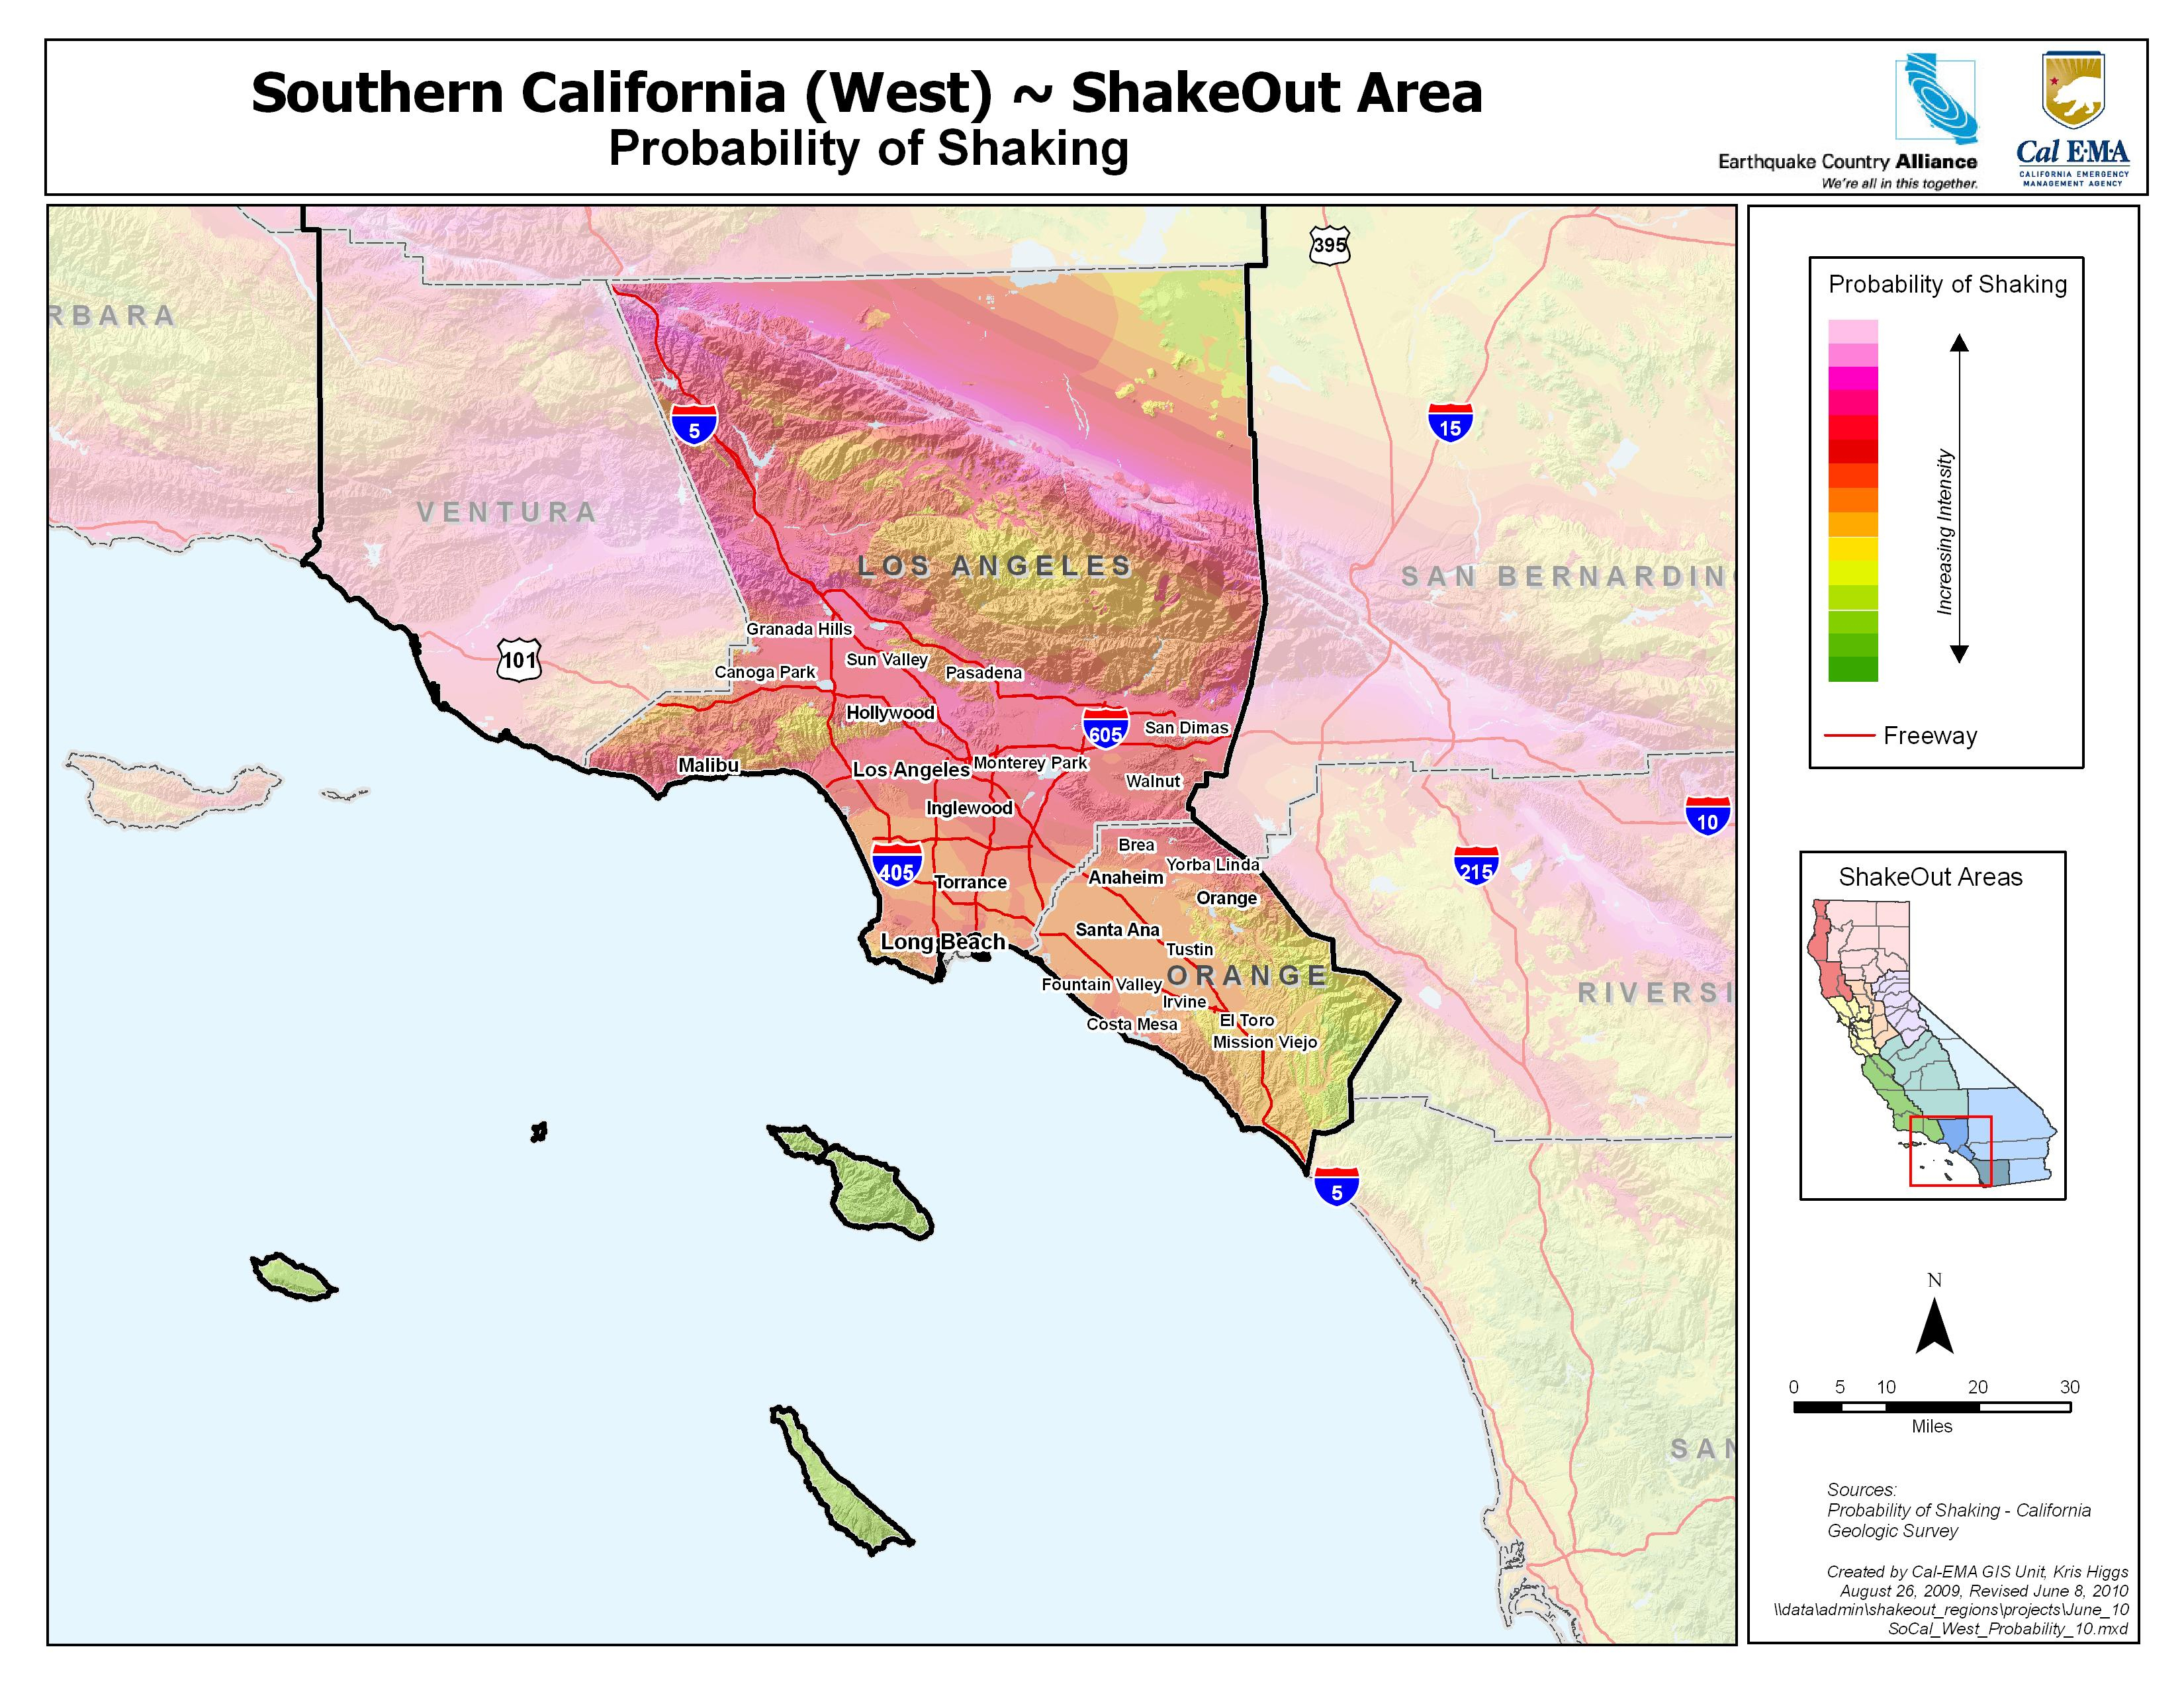 The Great California Shakeout - Southern California Coast Area - Southern California Earthquake Map